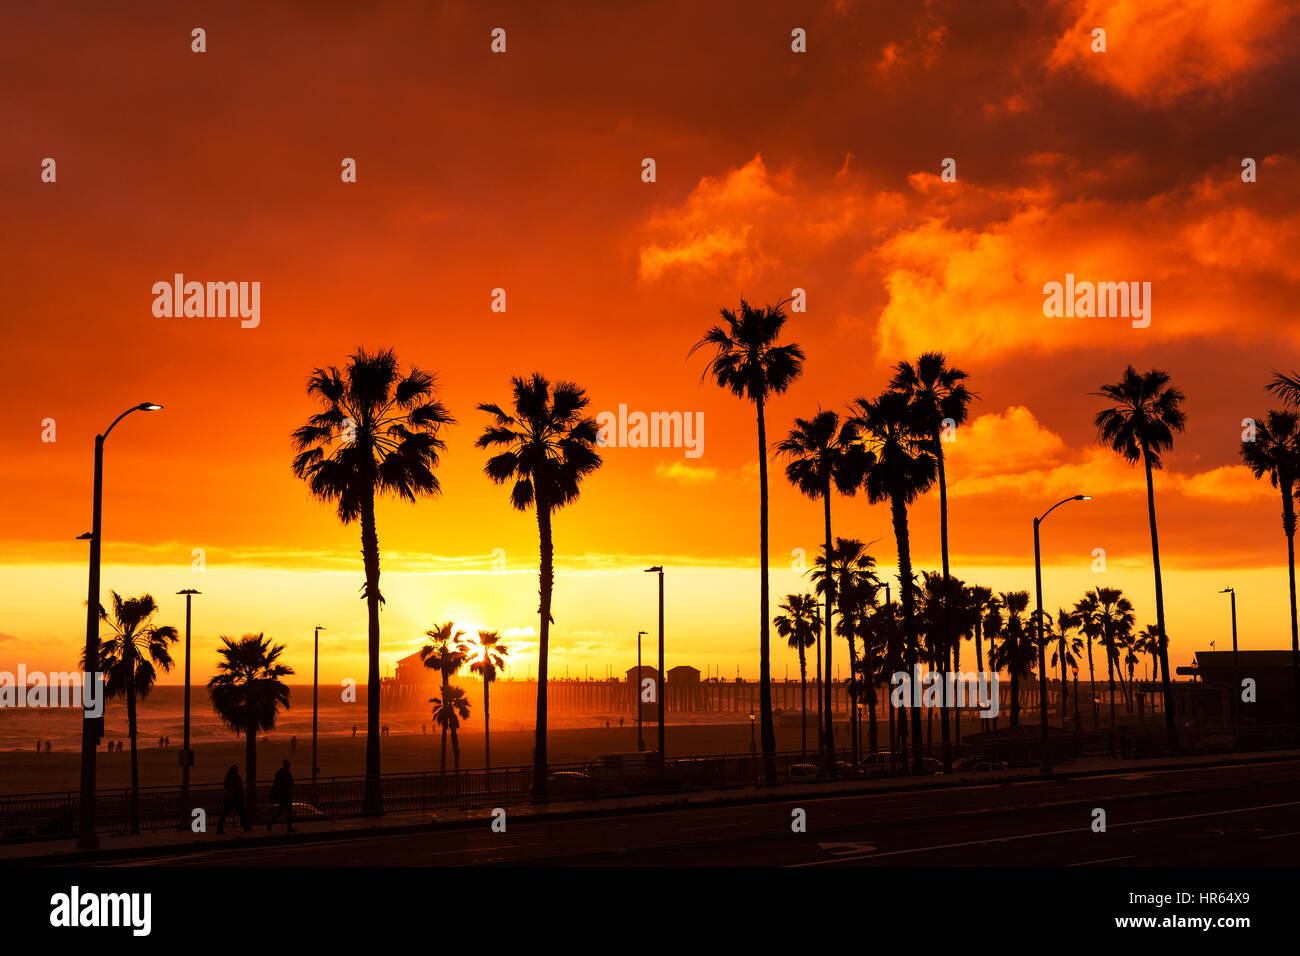 Huntington Beach California Sunset Stock Photo Alamy